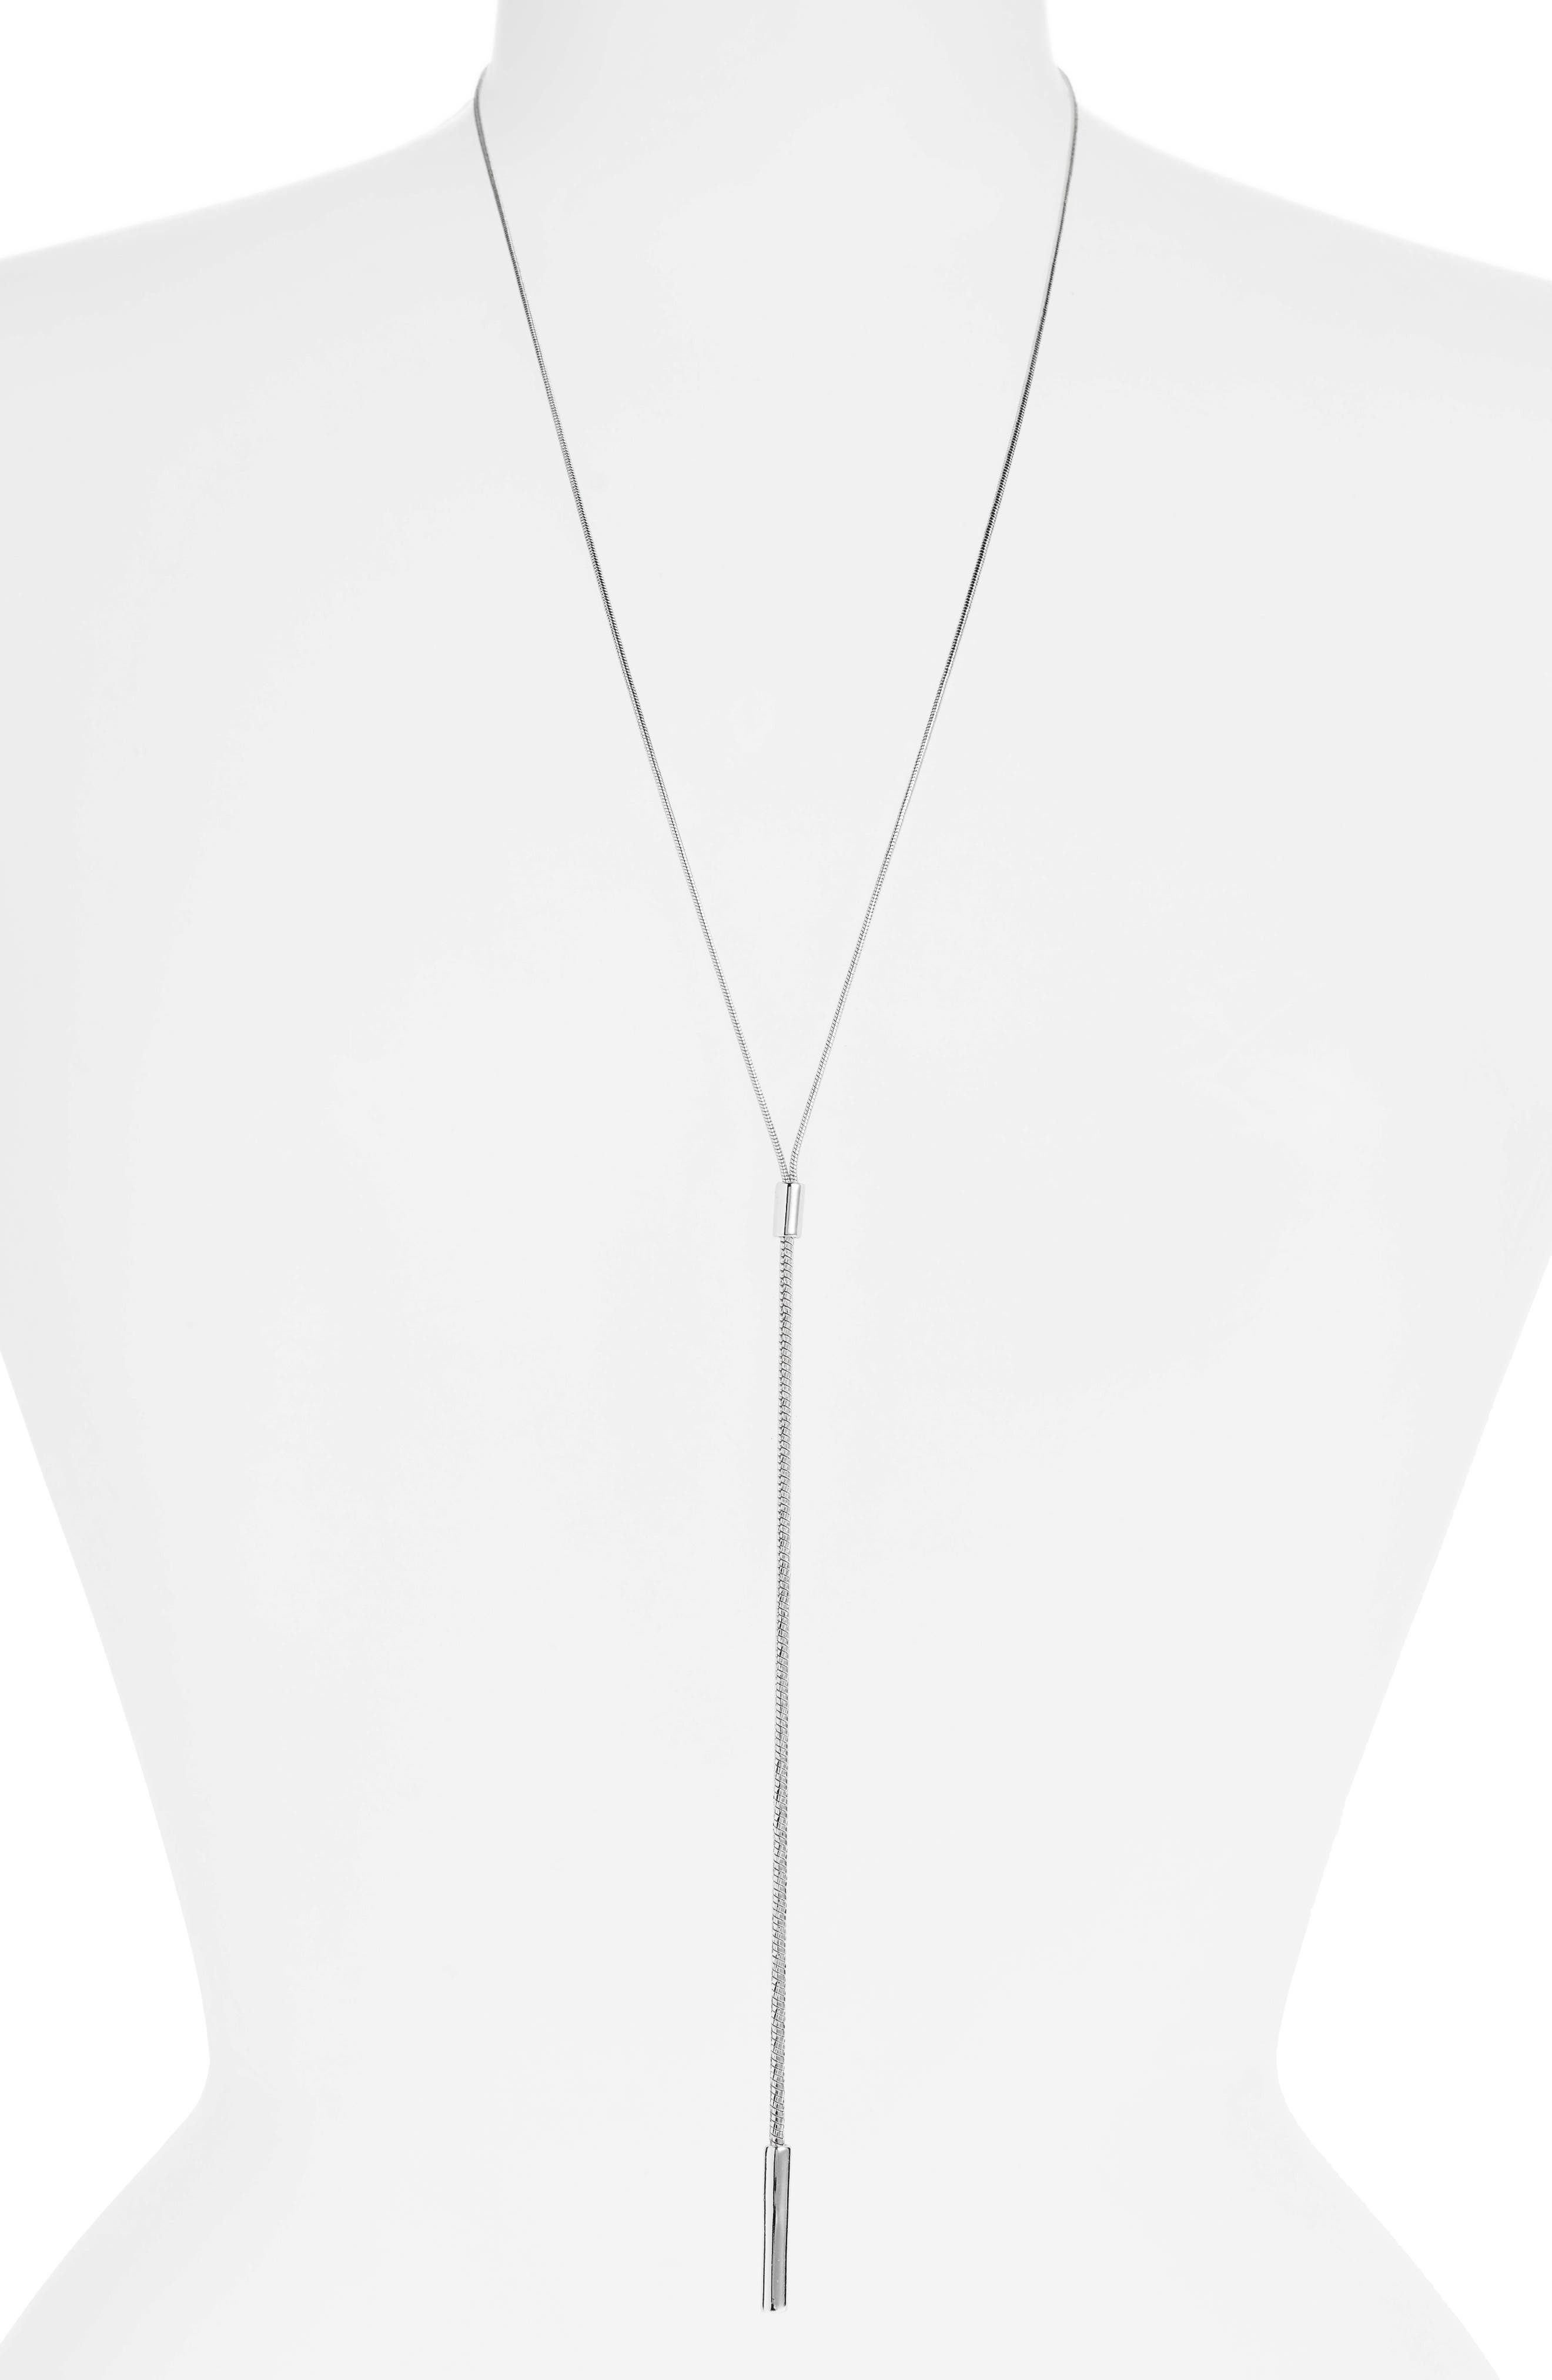 Organic Lariat Lariat Necklace Sterling Silver Lariat  Adjustable Necklace  Statement Necklace